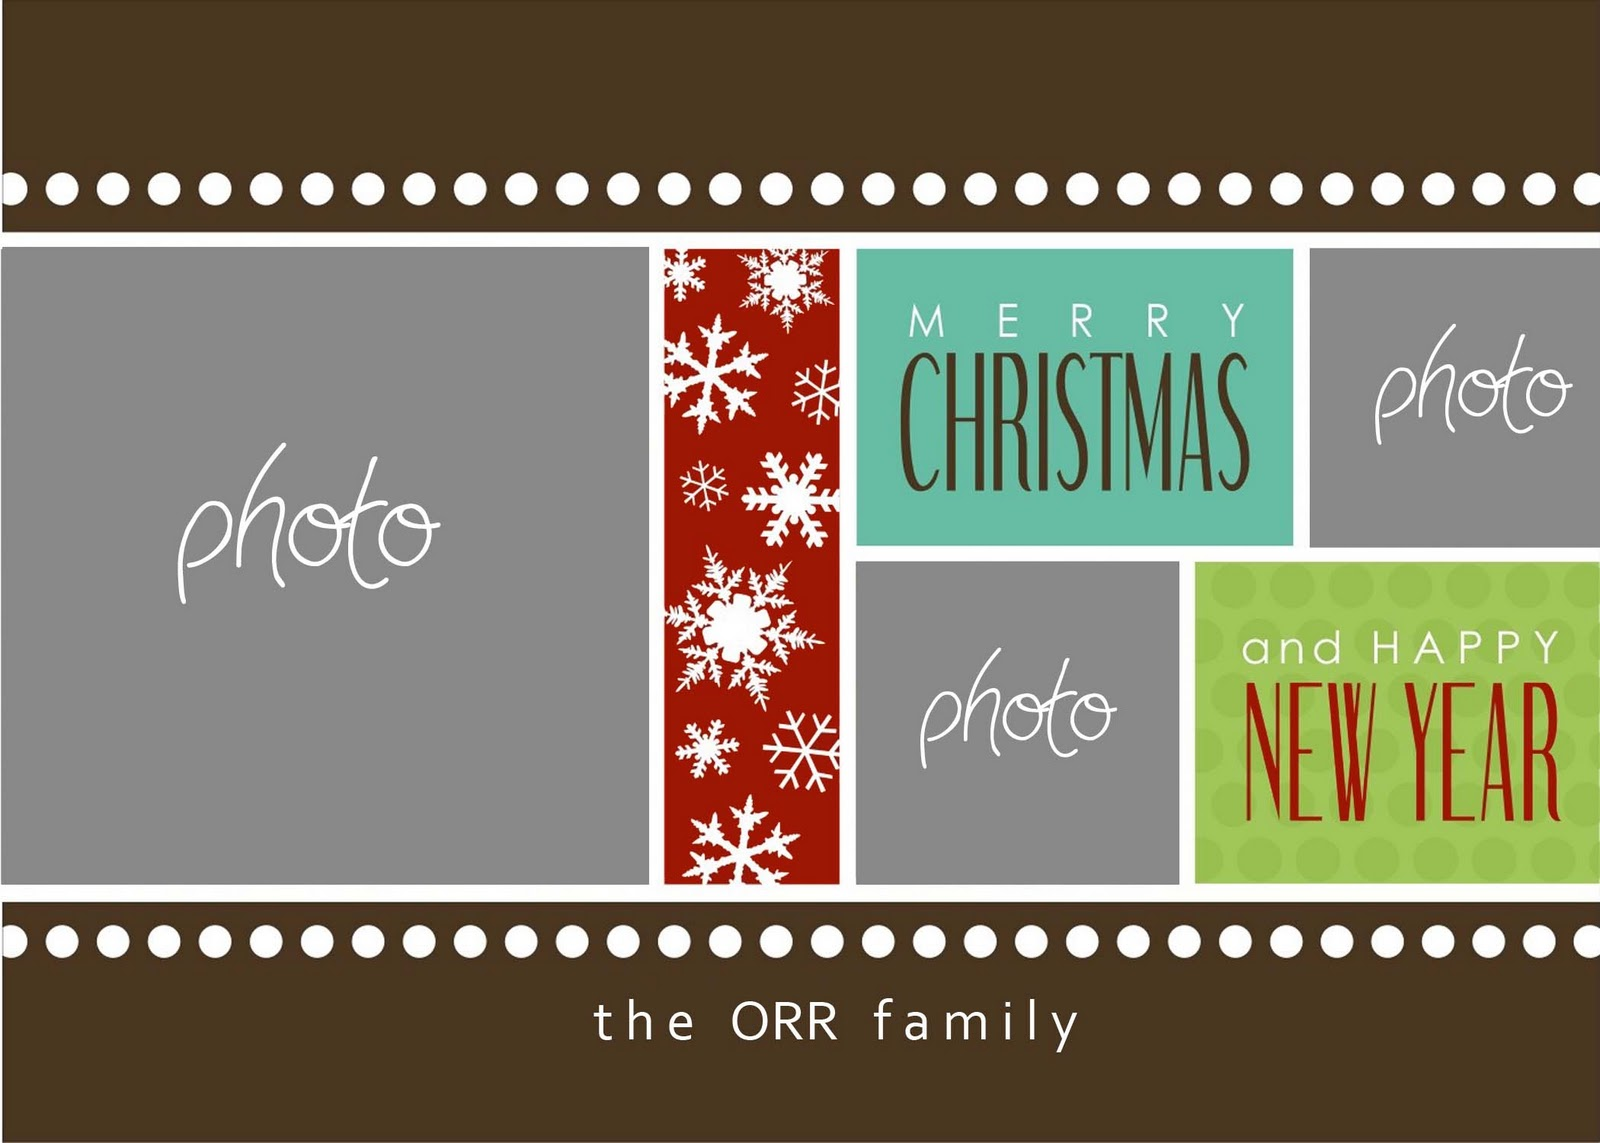 19 christmas card photoshop templates free images free photoshop christmas card templates. Black Bedroom Furniture Sets. Home Design Ideas